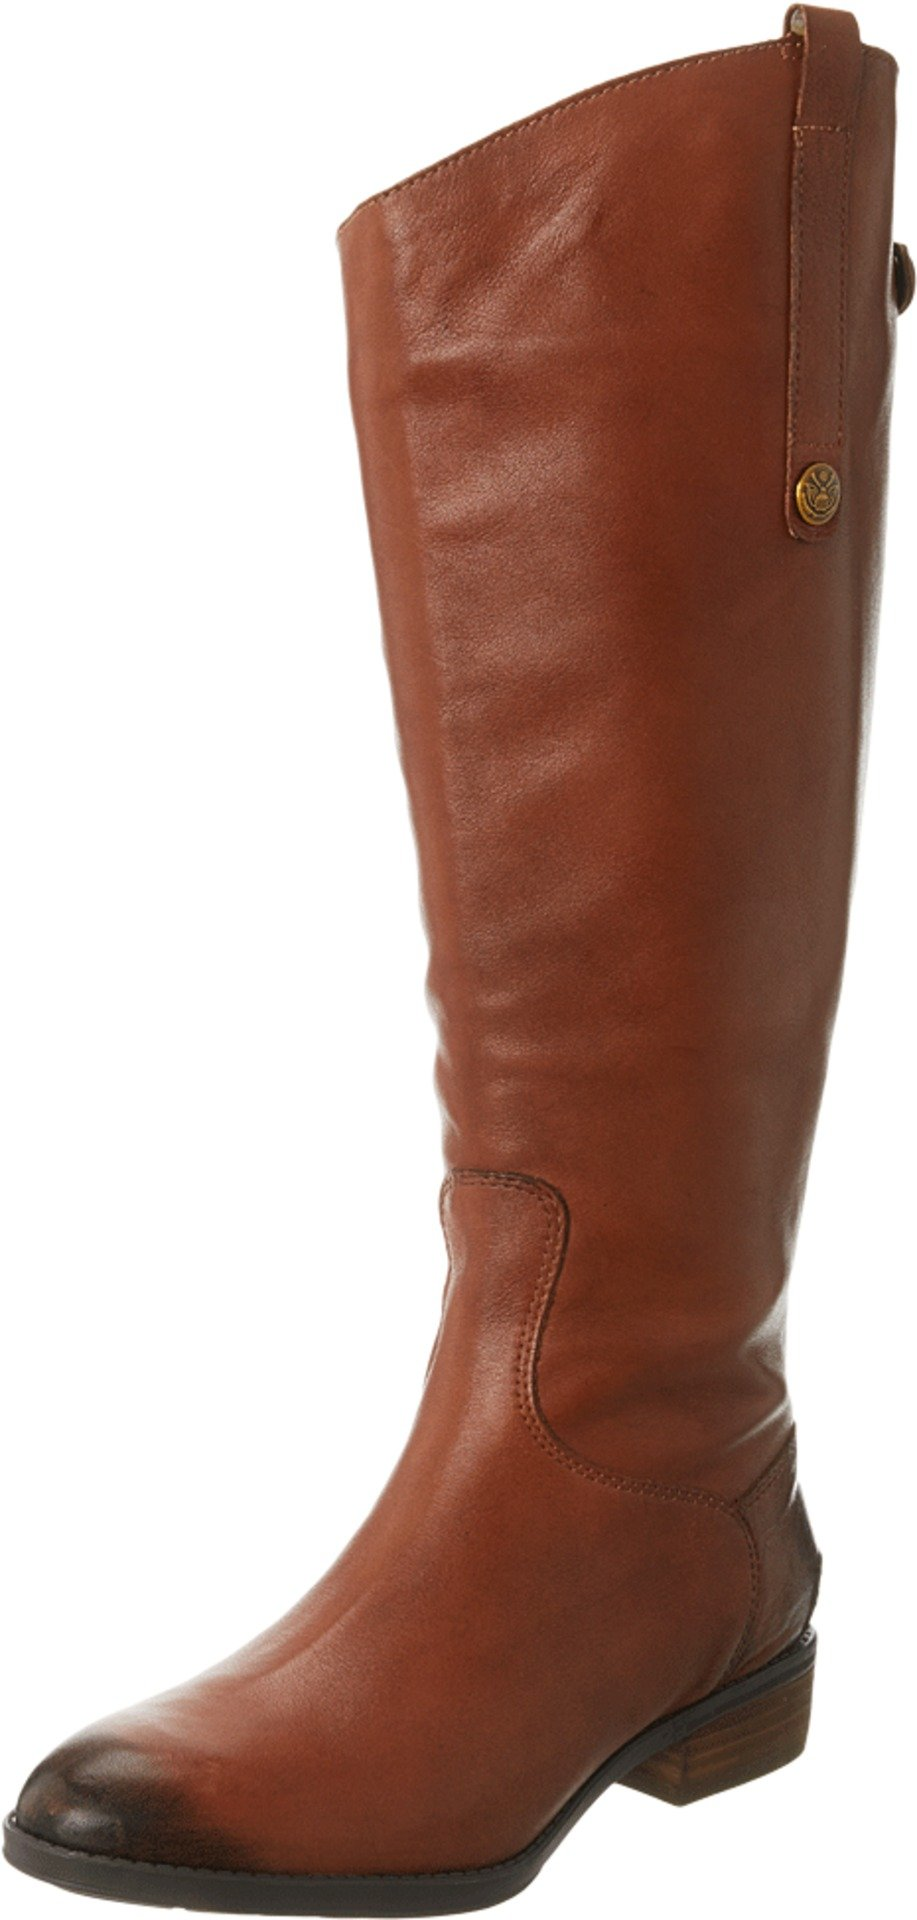 Sam Edelman Women's Penny 2 Wide Shaft Riding Boot, Whiskey Leather, 9 M US